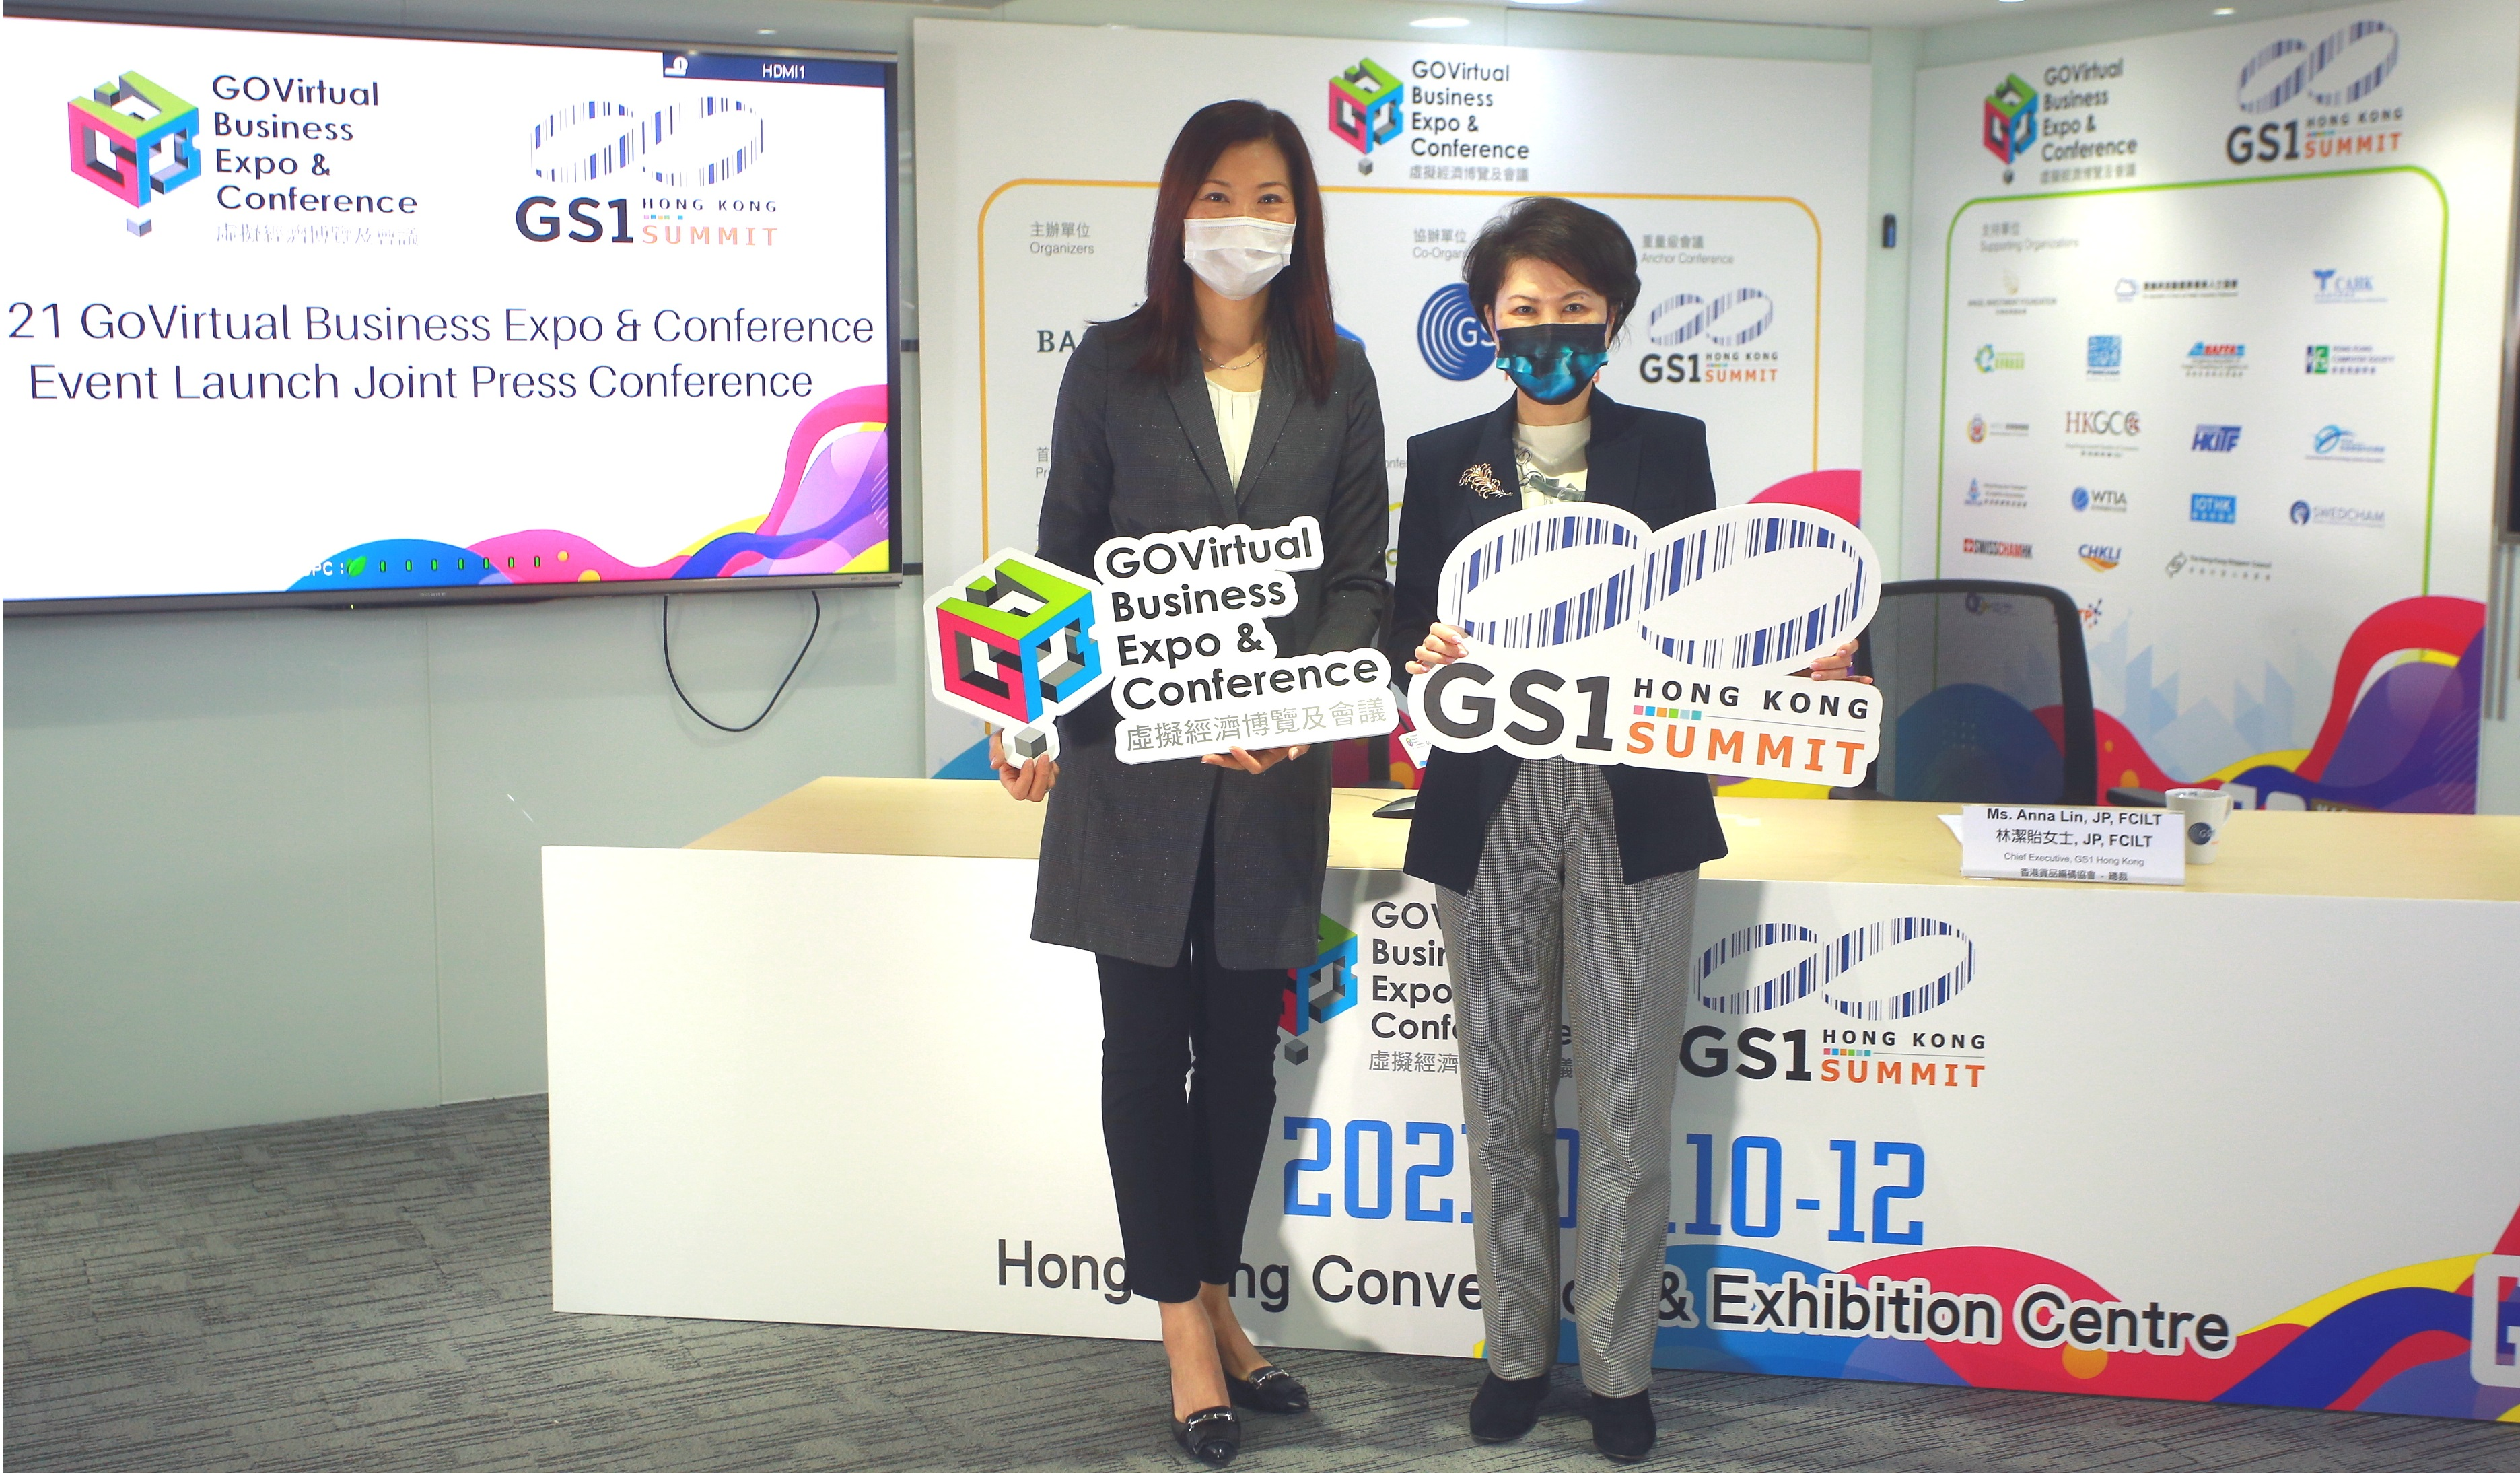 Newly Launched GOVirtual Business Expo  Conference Casts  Vote of Confidence in Hong Kongs Post Pandemic Economy Rebound